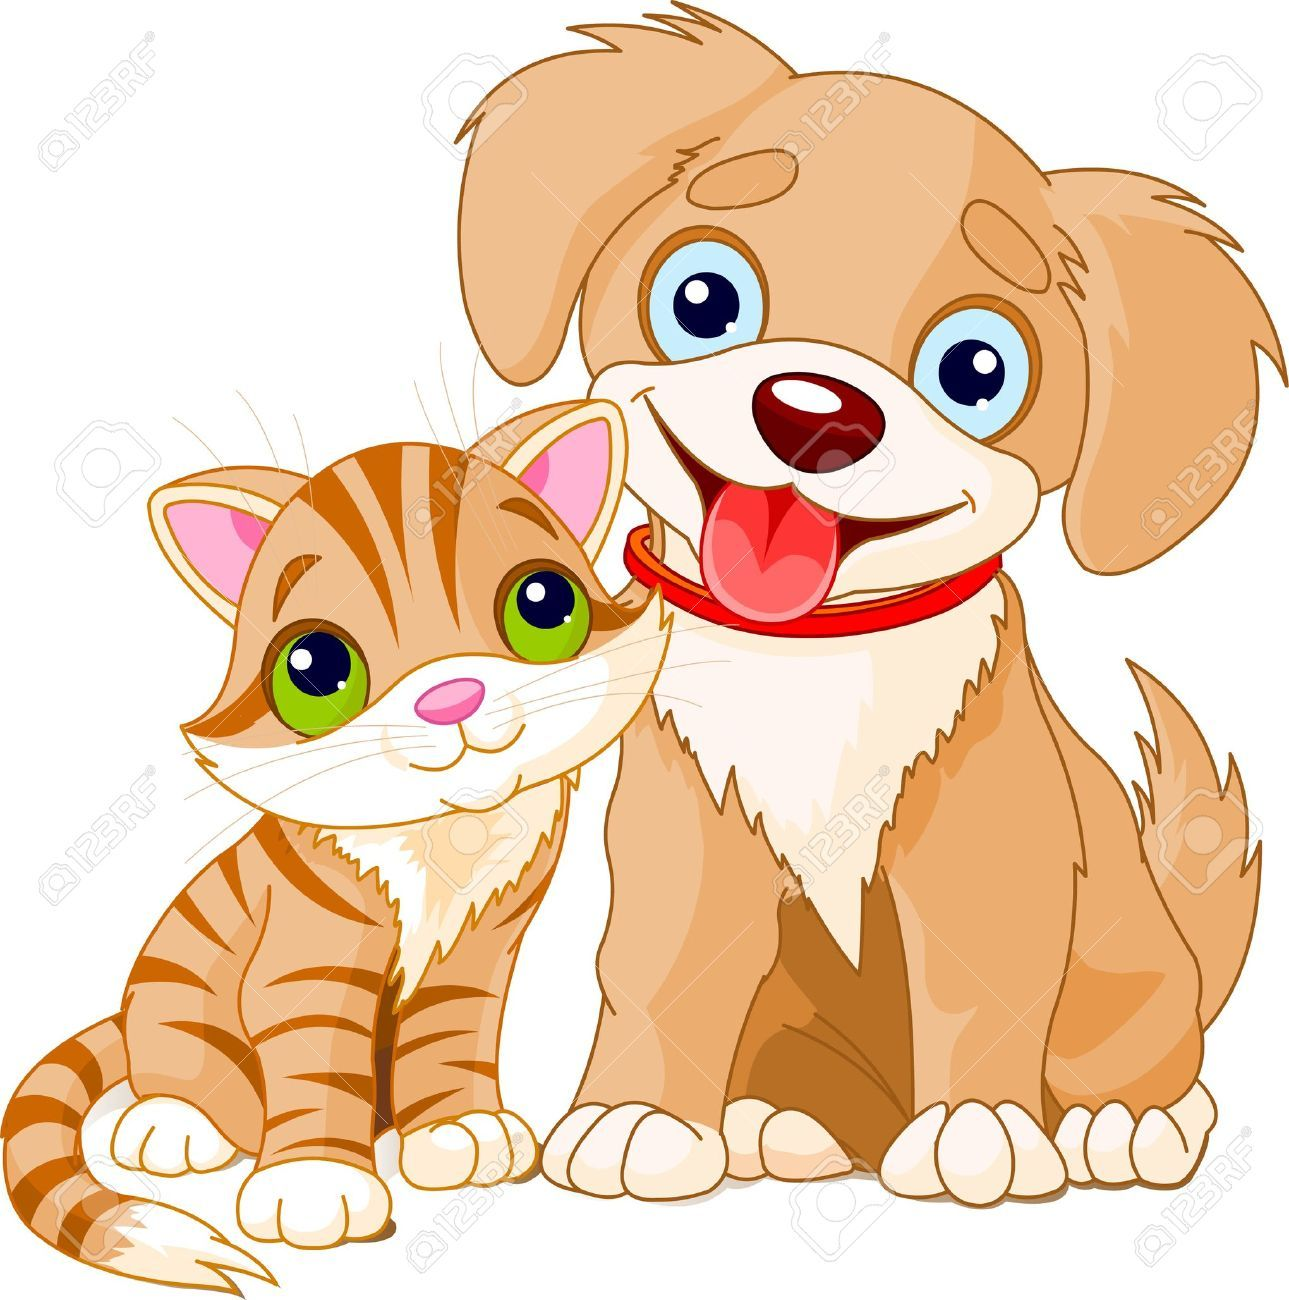 puppy and kitten clipart 1 1289—1300